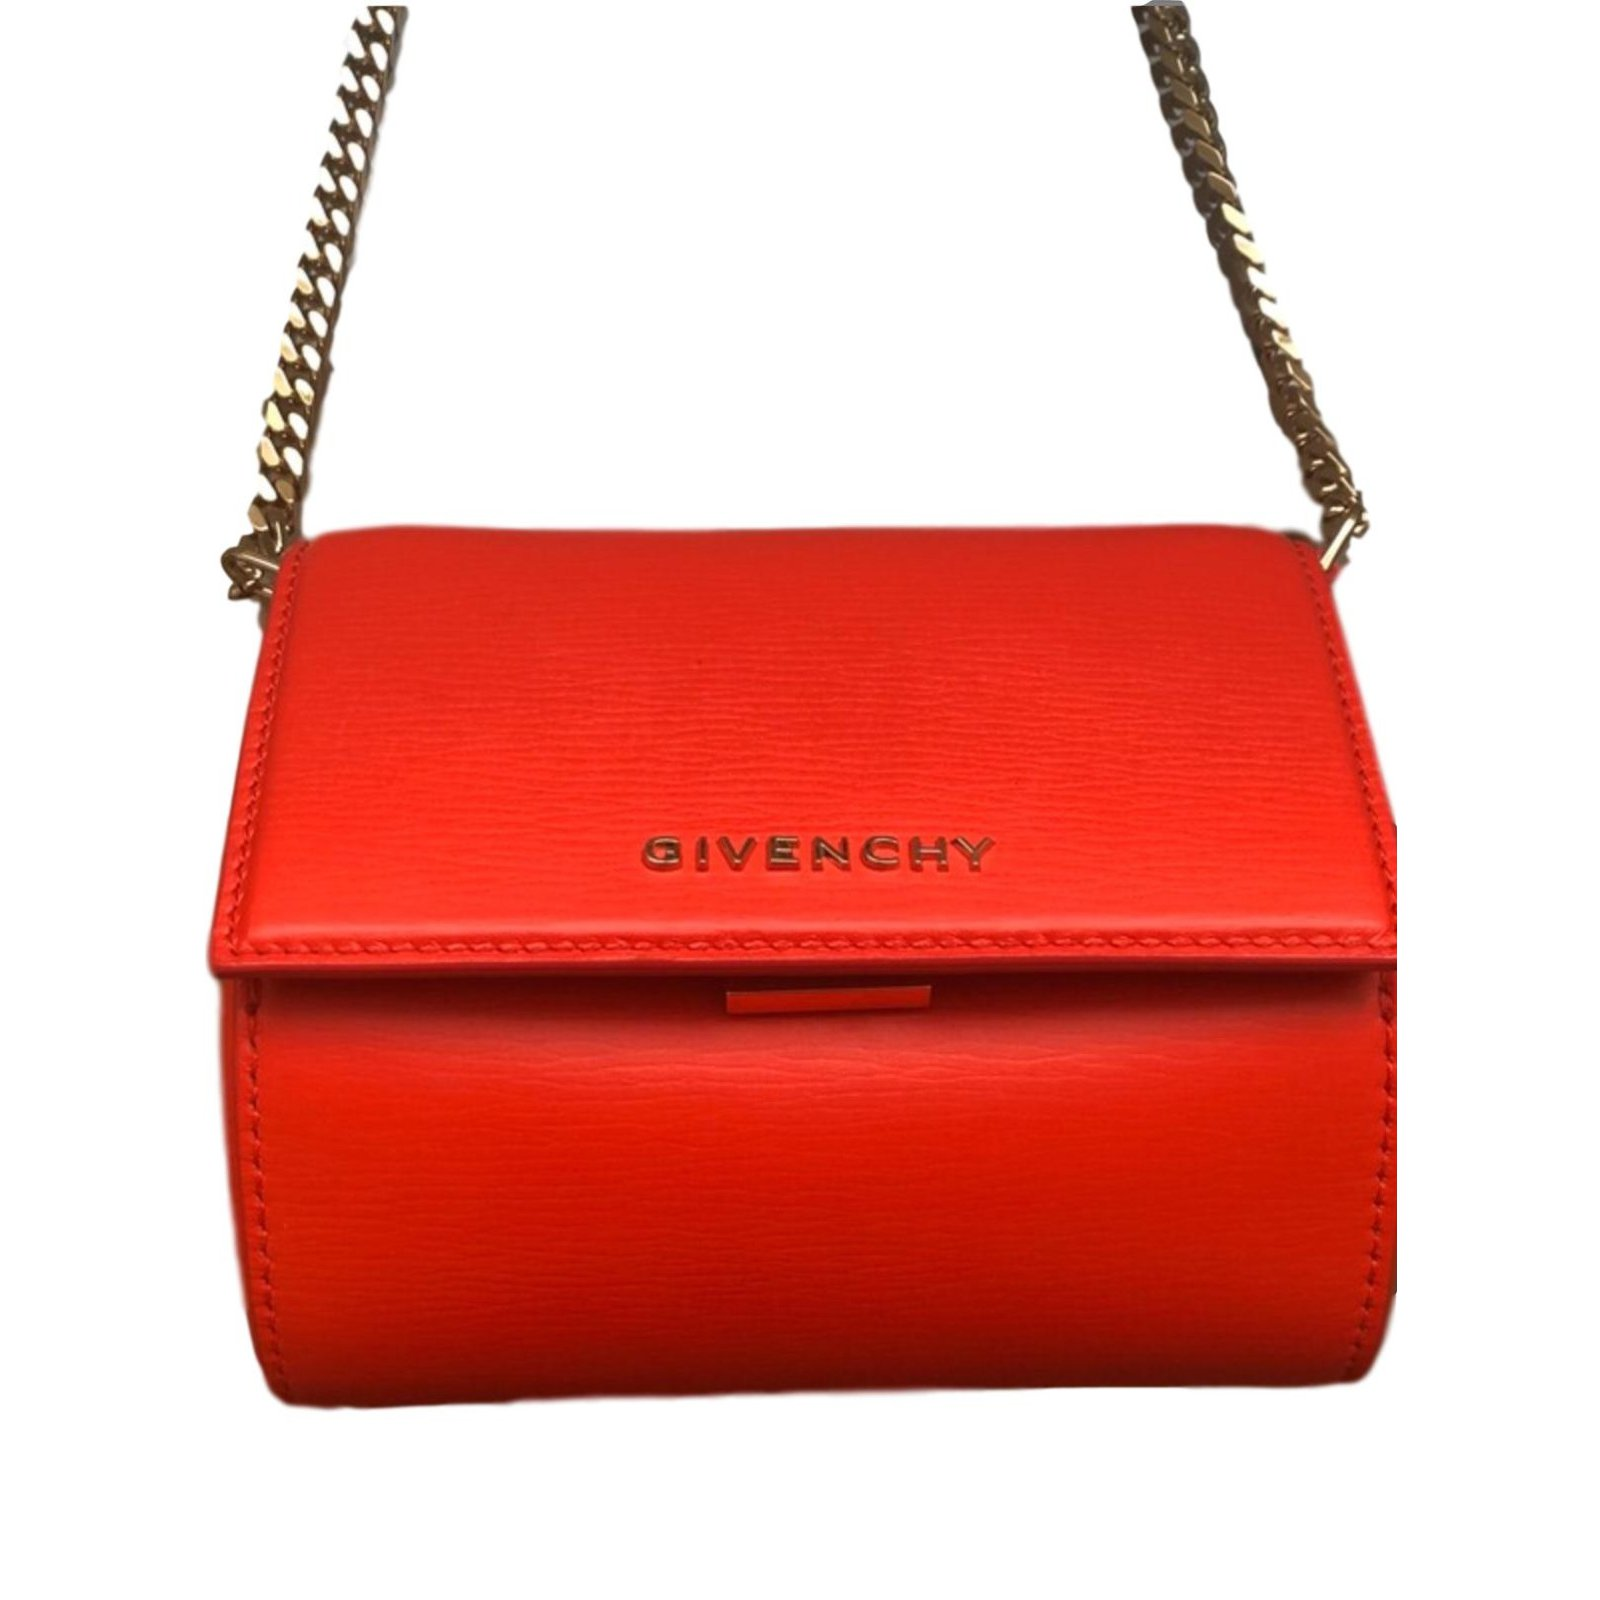 73e77957c61 Givenchy Micro pandora box Handbags Leather Orange ref.88498 - Joli ...